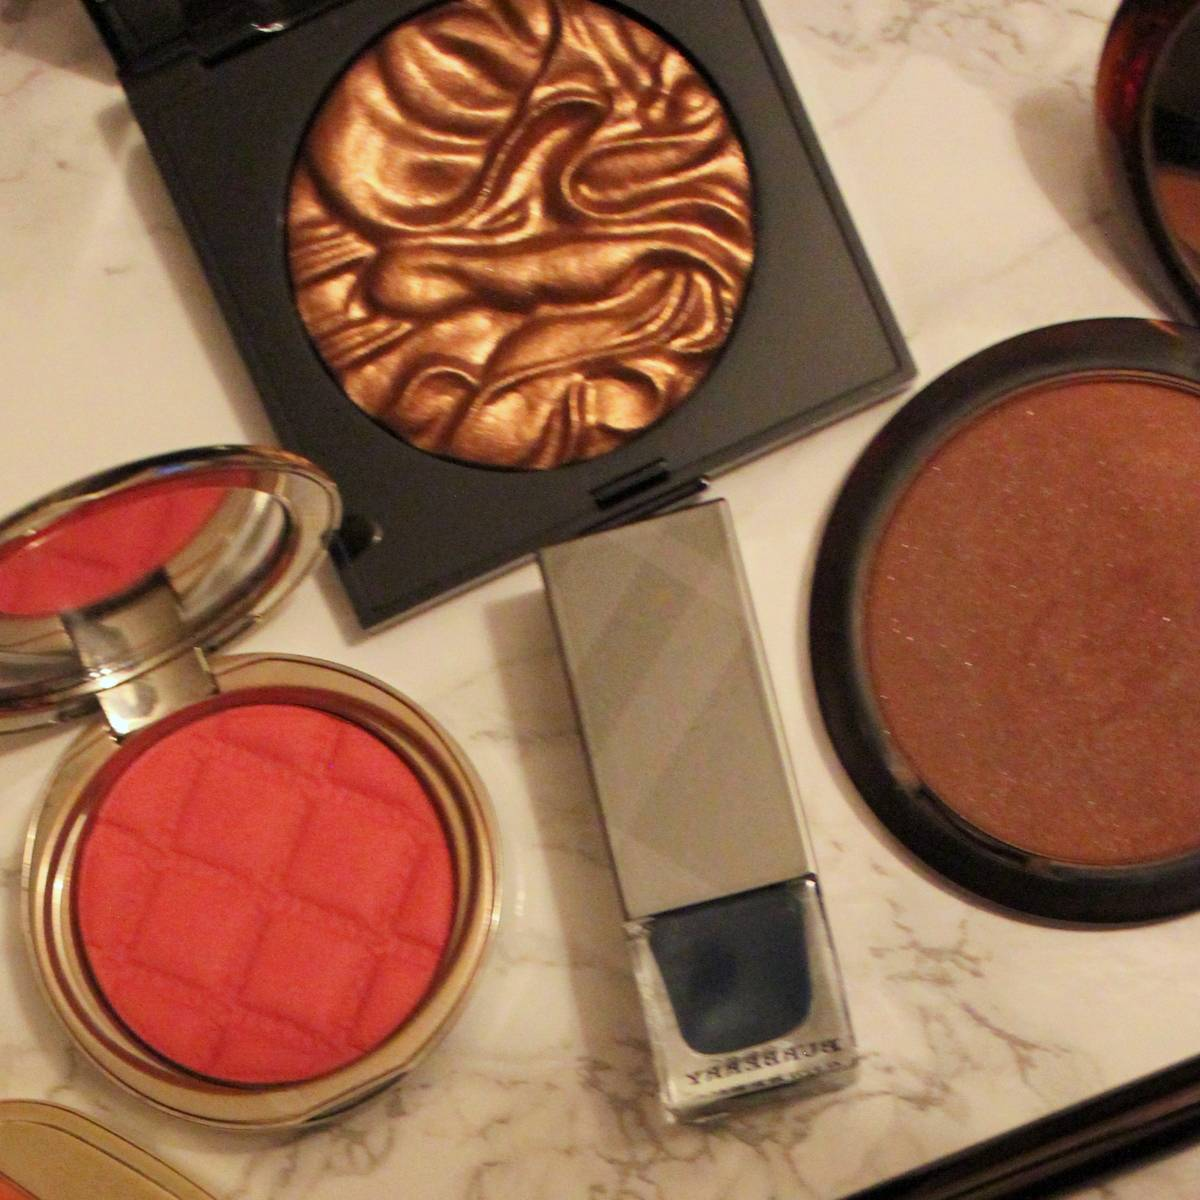 10 Luxe Makeup products for black women over 40